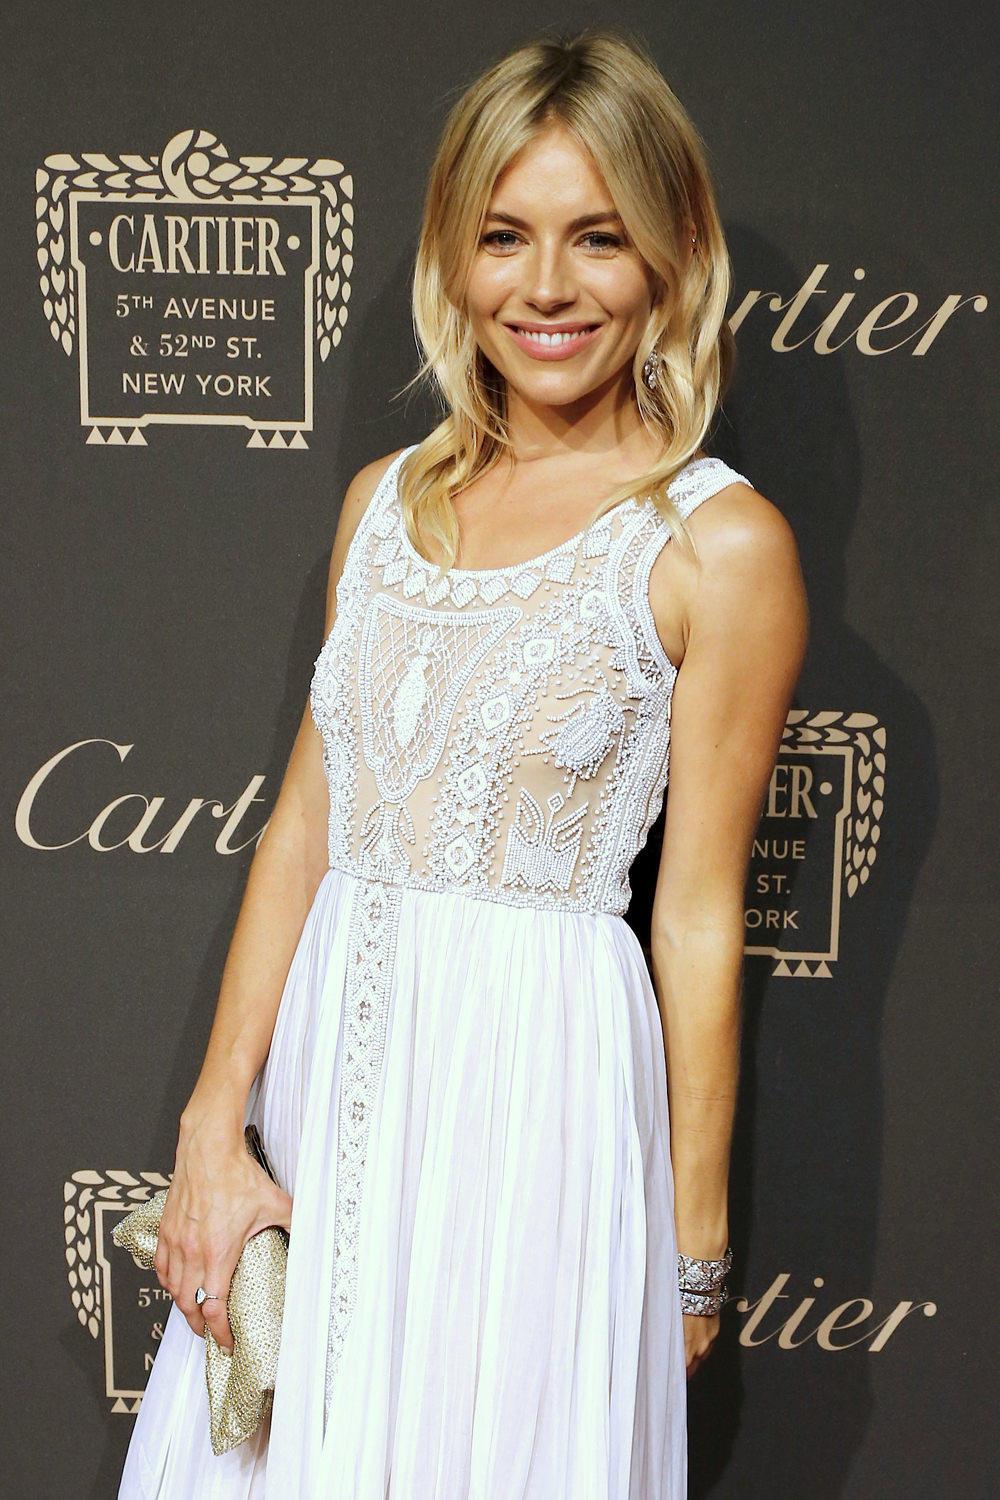 Sienna-Miller-Cartier-Fifth-Avenue-Grand-Reopening-Event-Red-Carpet-Fashion-Valentino-Tom-Lorenzo-Site (1)